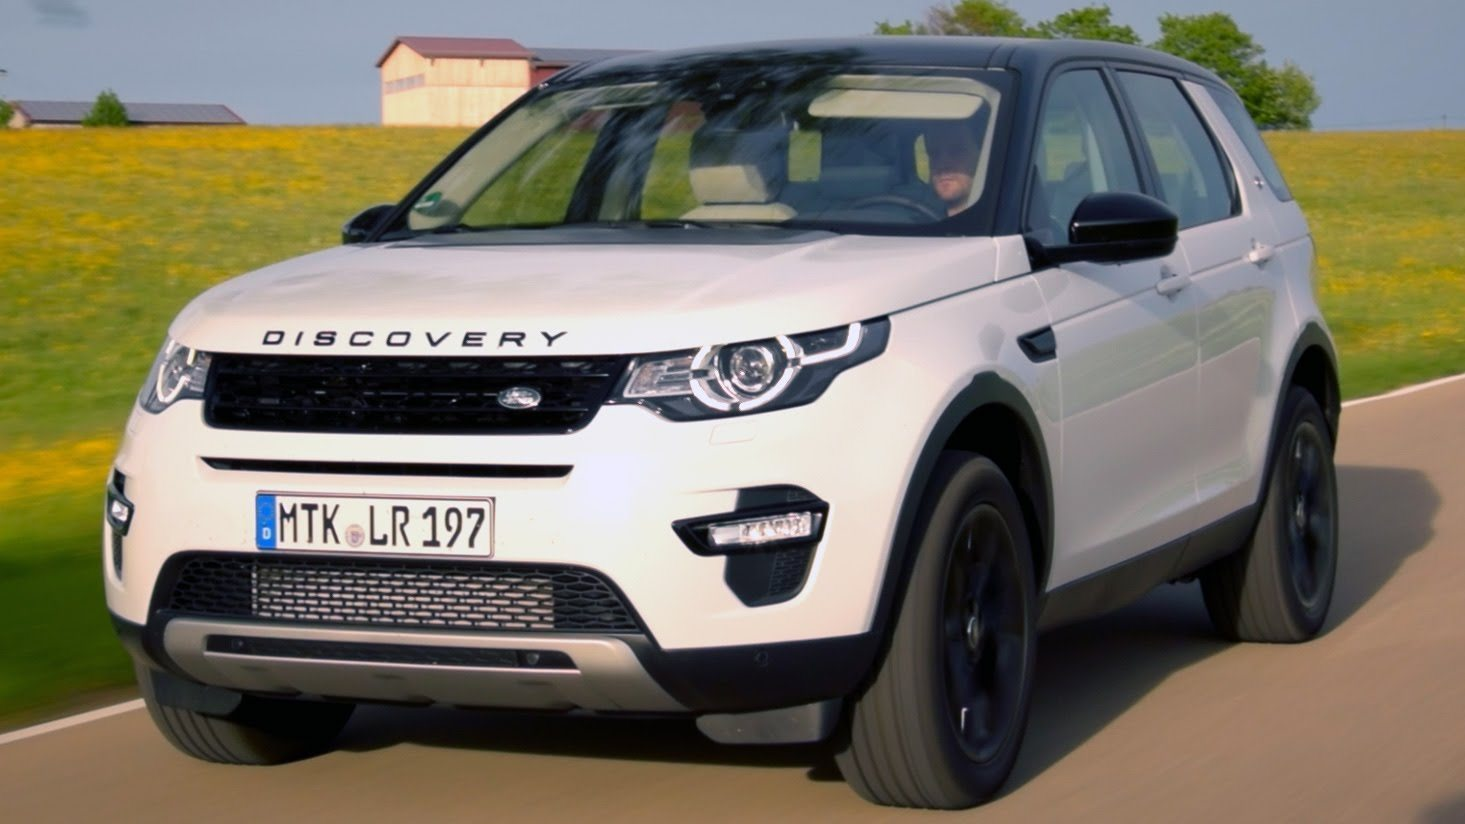 2018 Land Rover Discovery Sport Hse Luxury Car 2018 Land